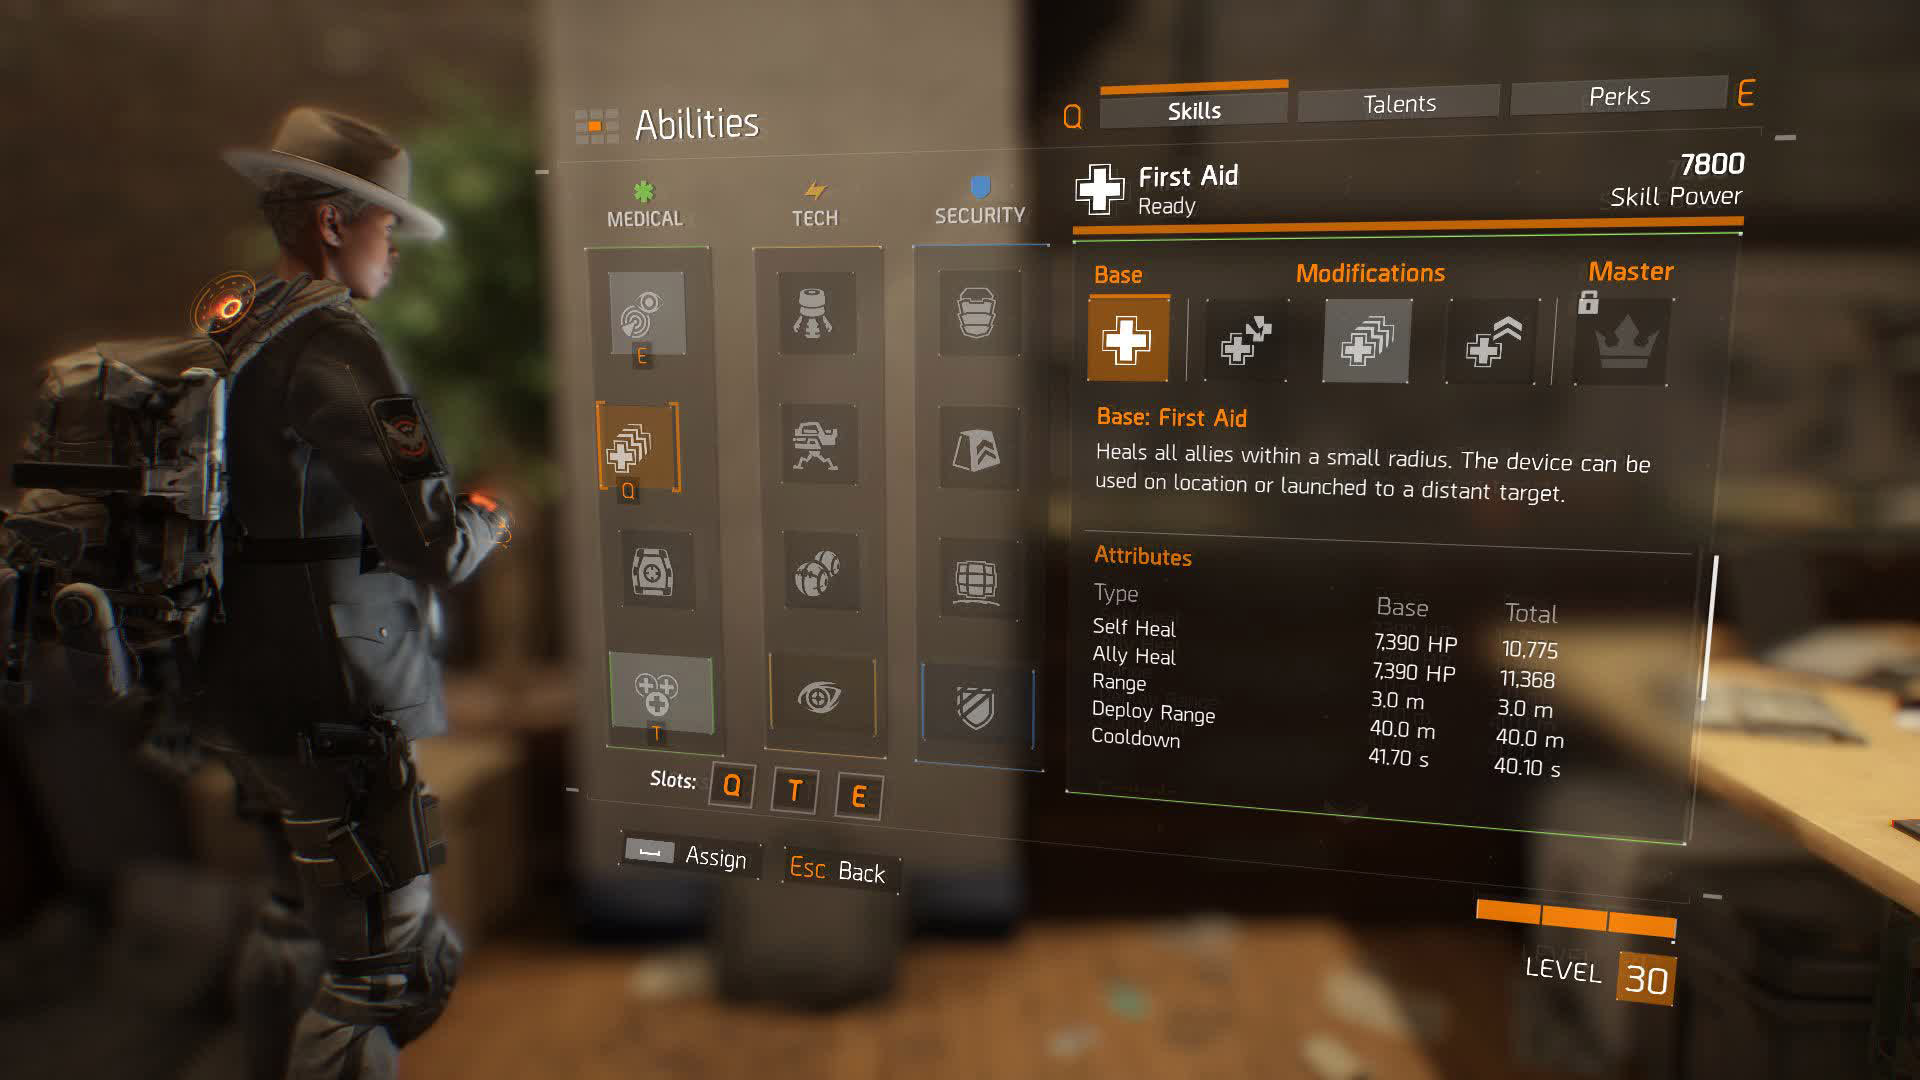 Best Builds Talents Skills The Division